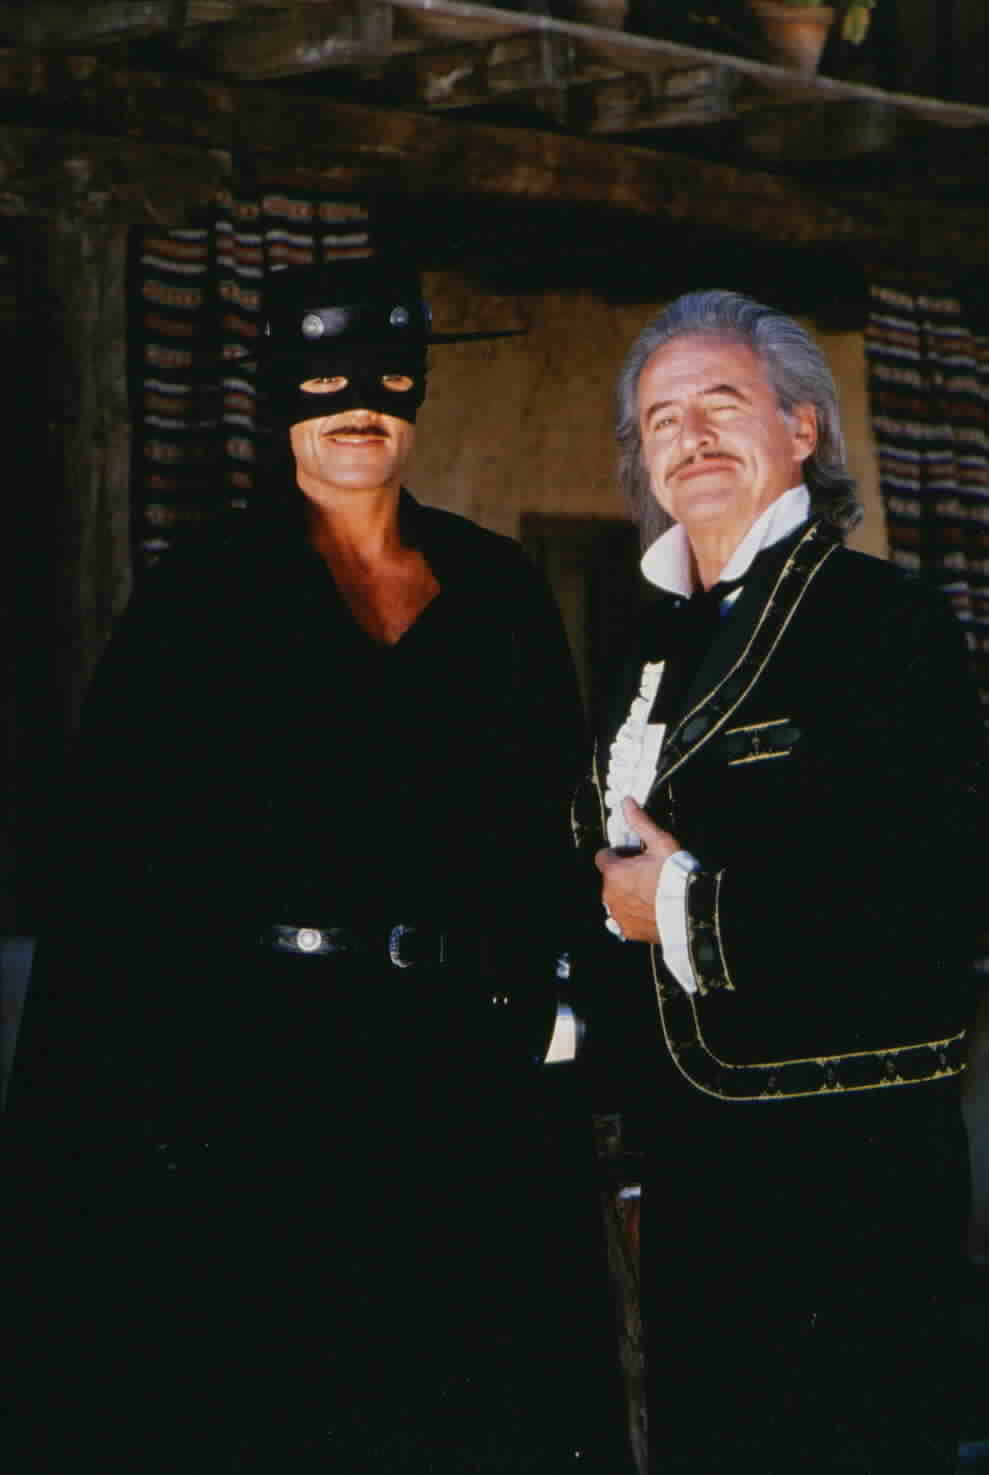 Zorro and Don Alejandro